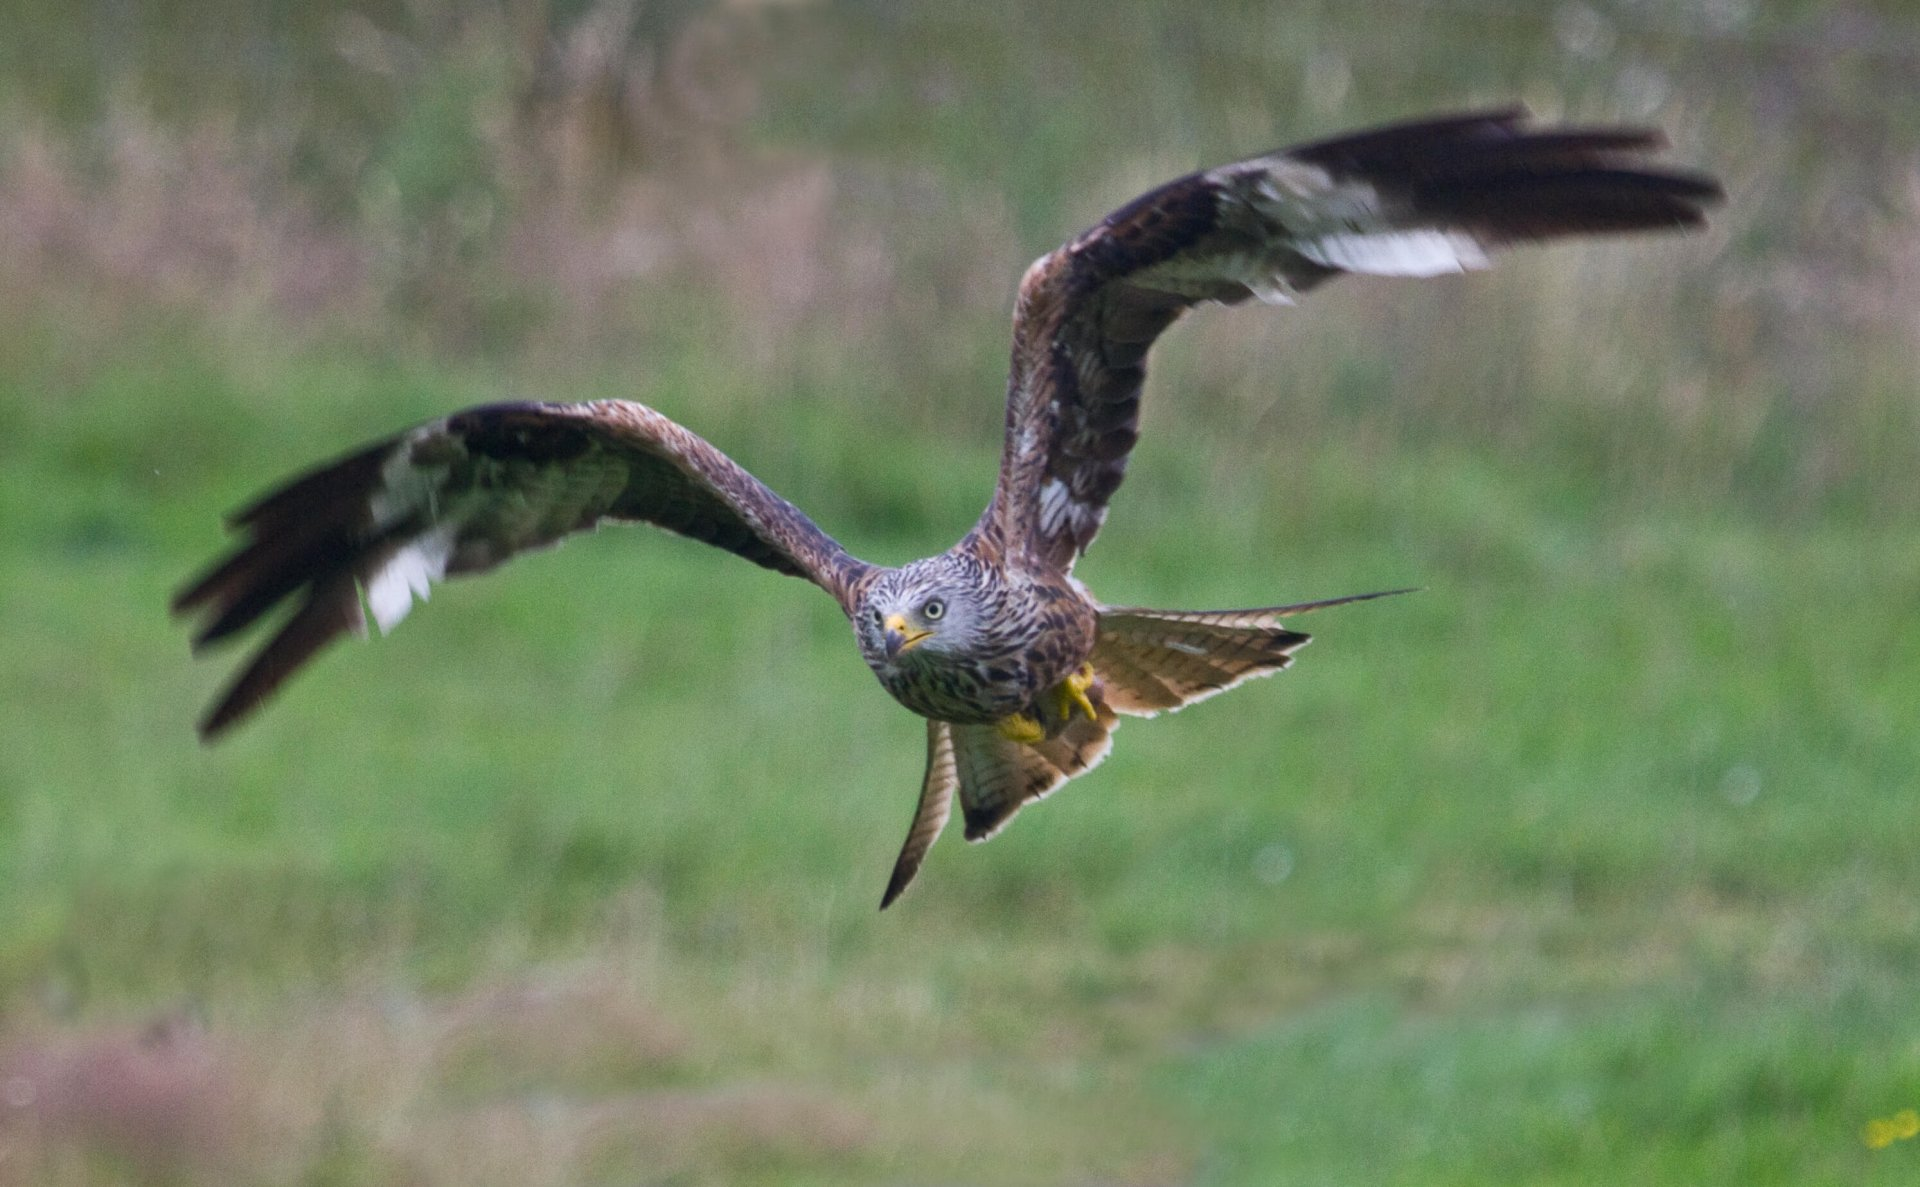 The Red Kite's recovery provides a message of hope © Richard Towell